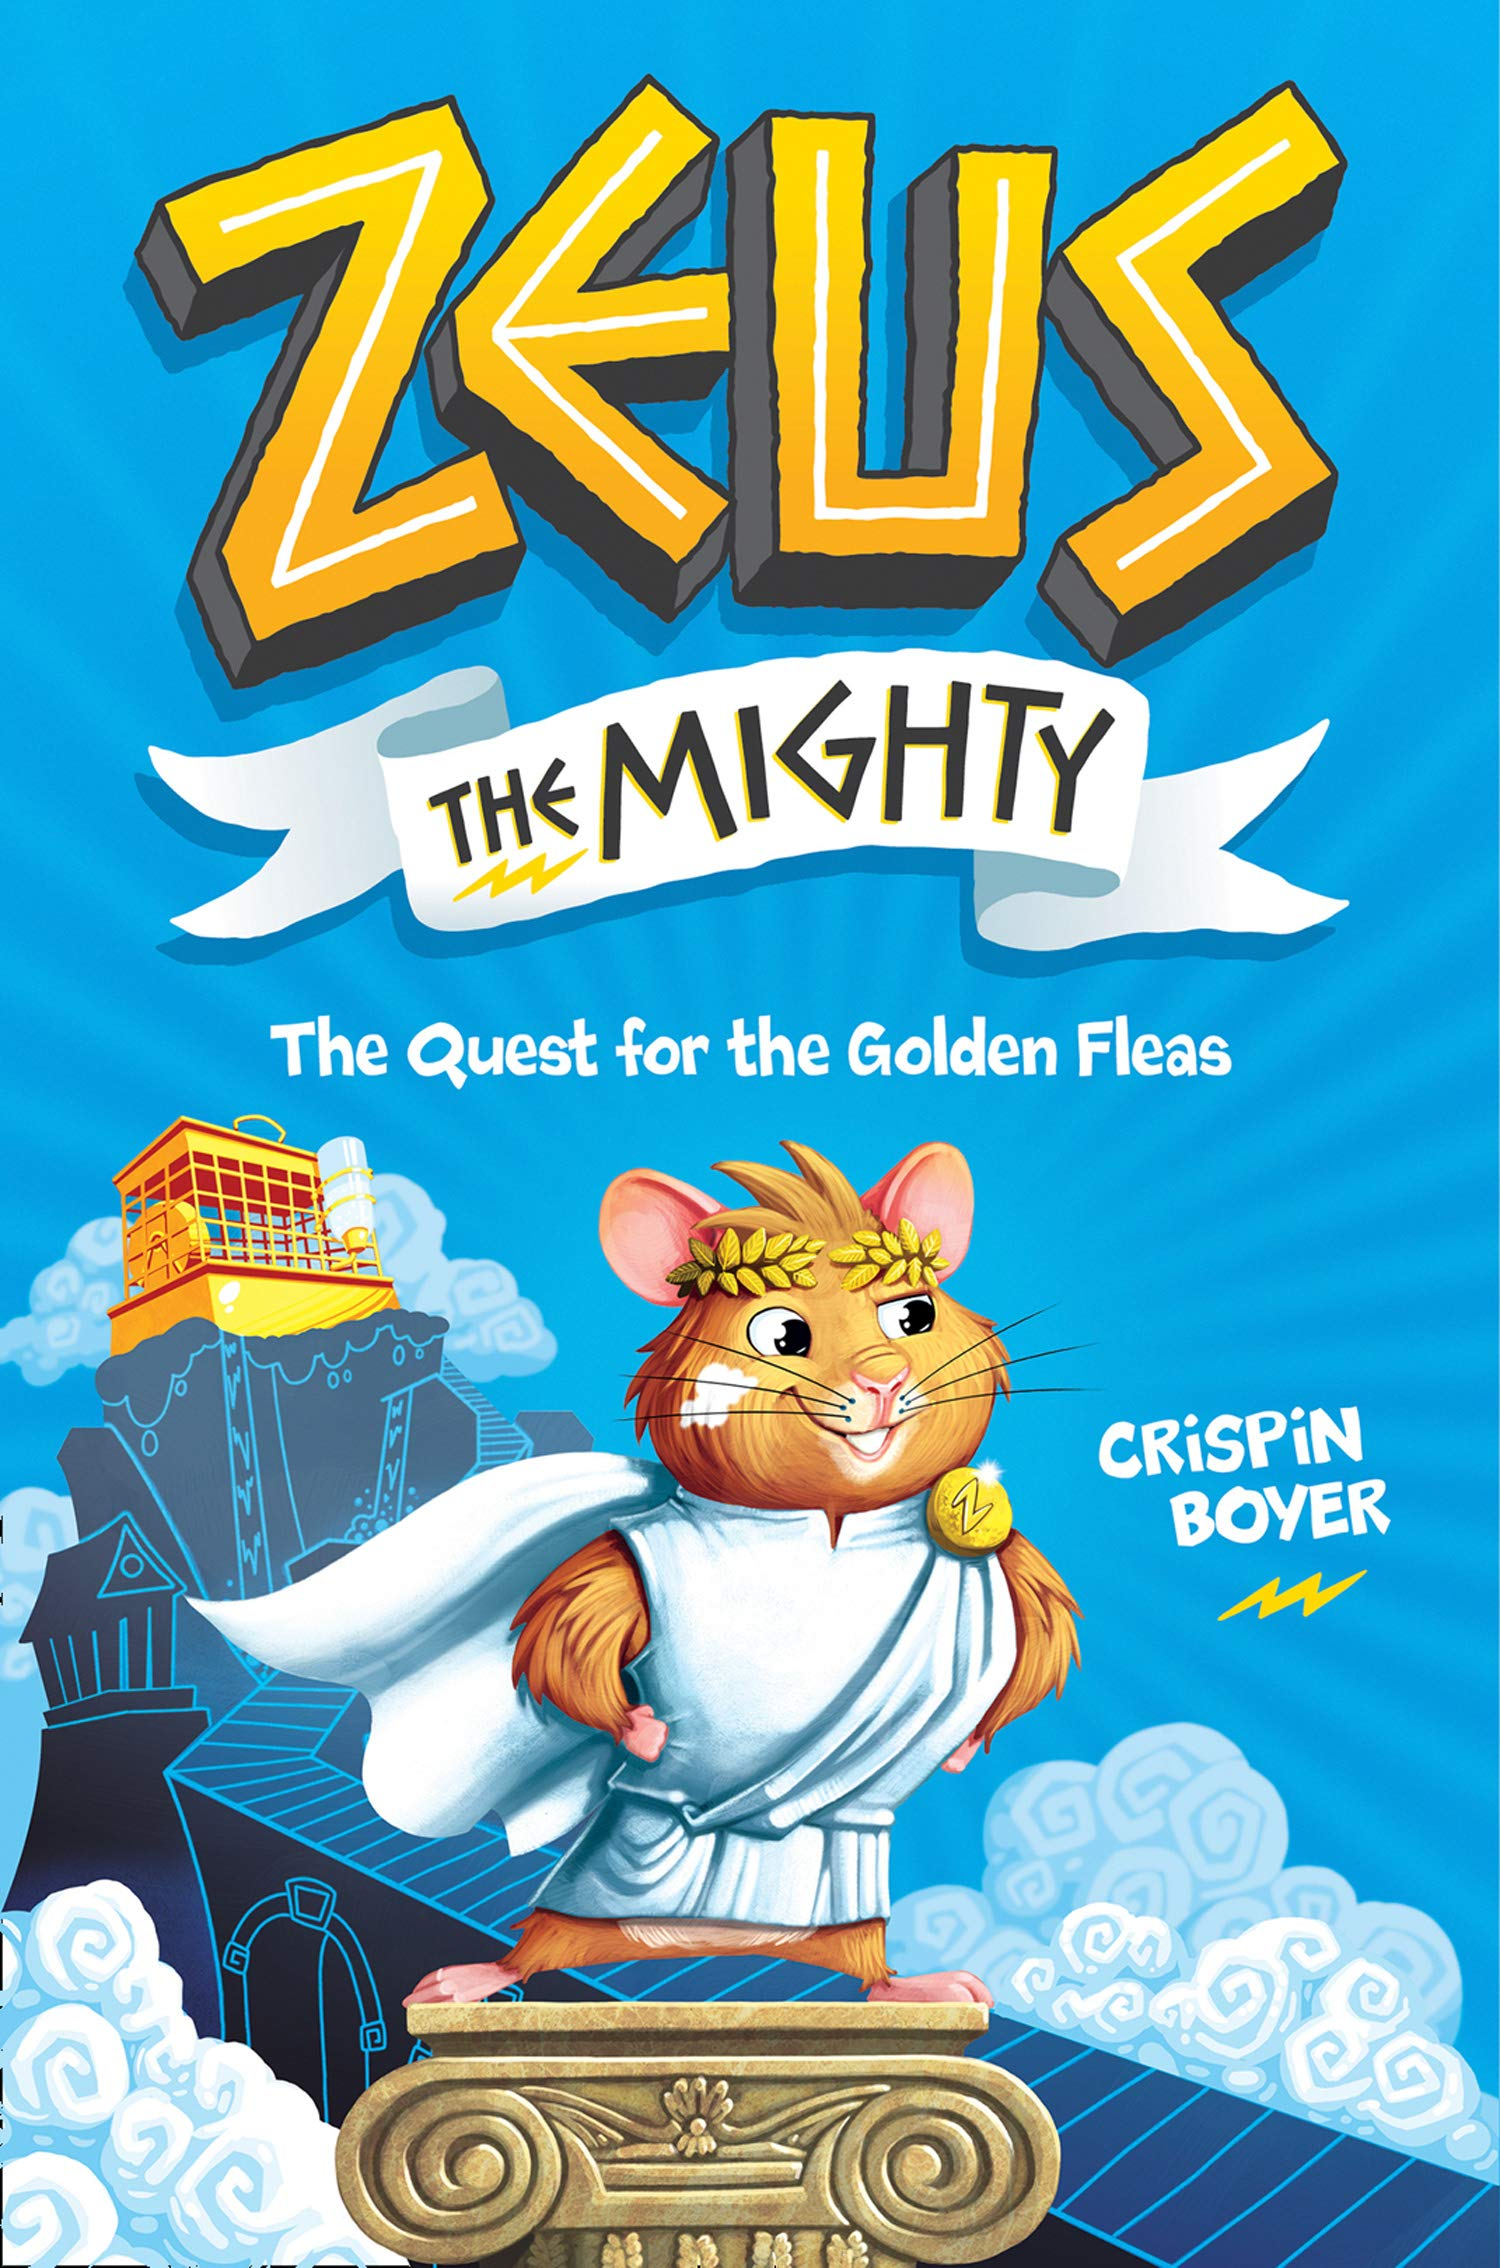 transparent download The mighty quest for. Zeus clipart meets